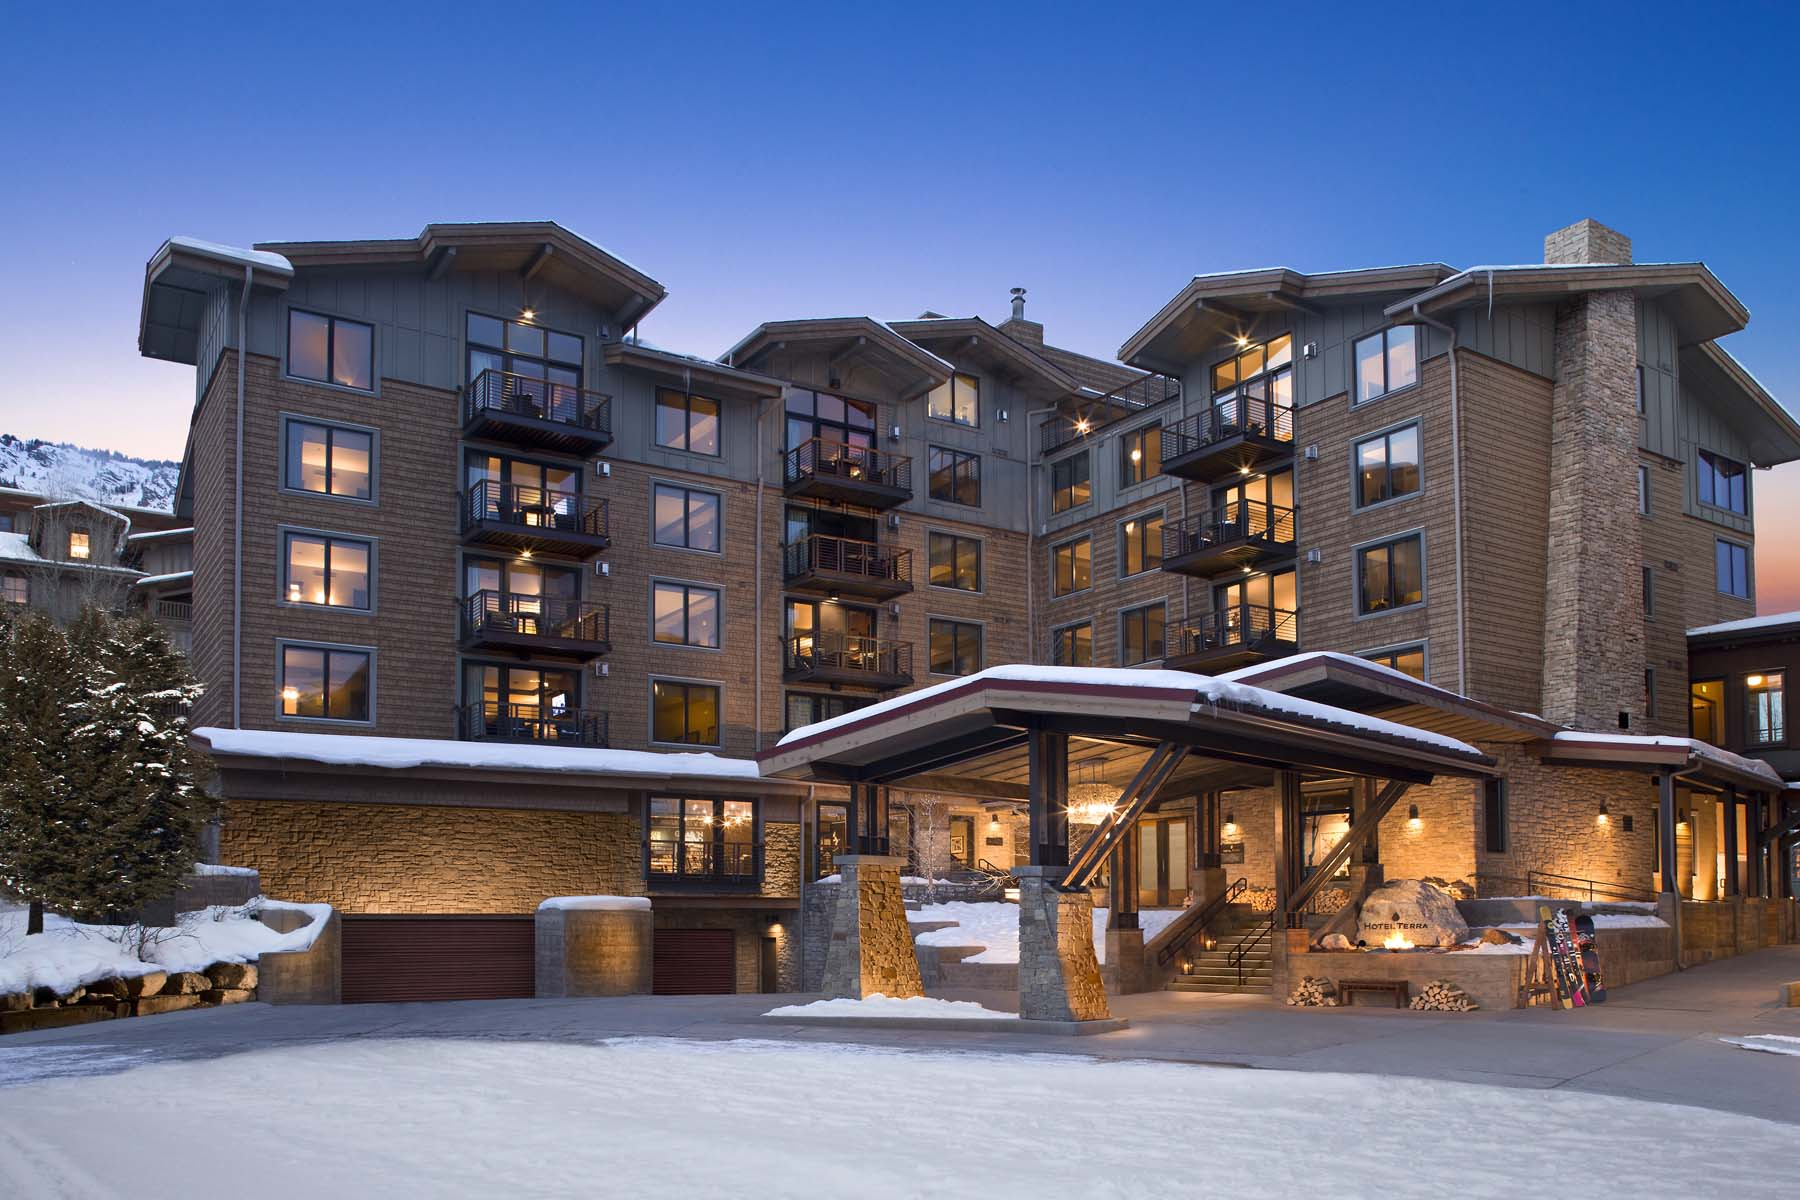 Condominio por un Venta en Slopeside 3 bedroom/4 bath condo 3325 W. Village Drive Unit 267 Teton Village, Wyoming, 83025 Jackson Hole, Estados Unidos